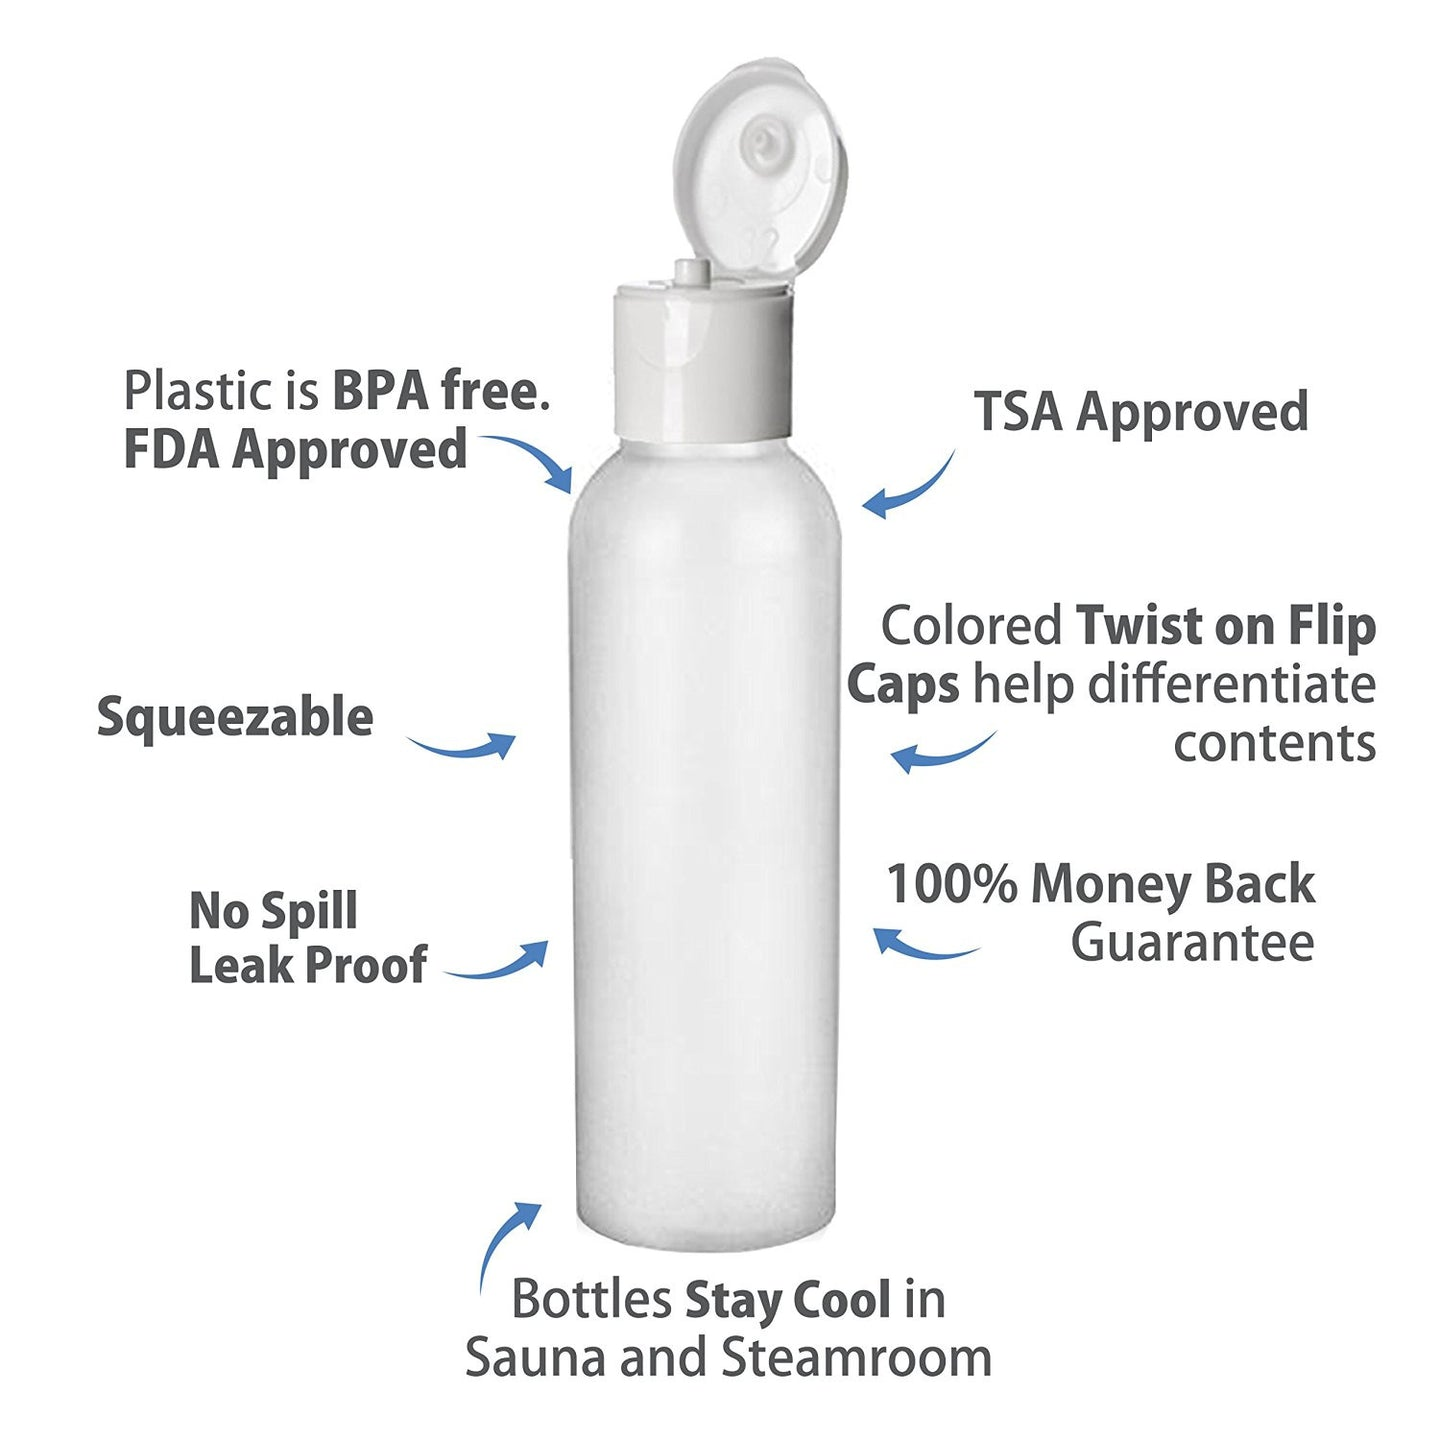 2 Oz HDPE Flip Cap Empty Travel Bottles - Translucent 30 pack